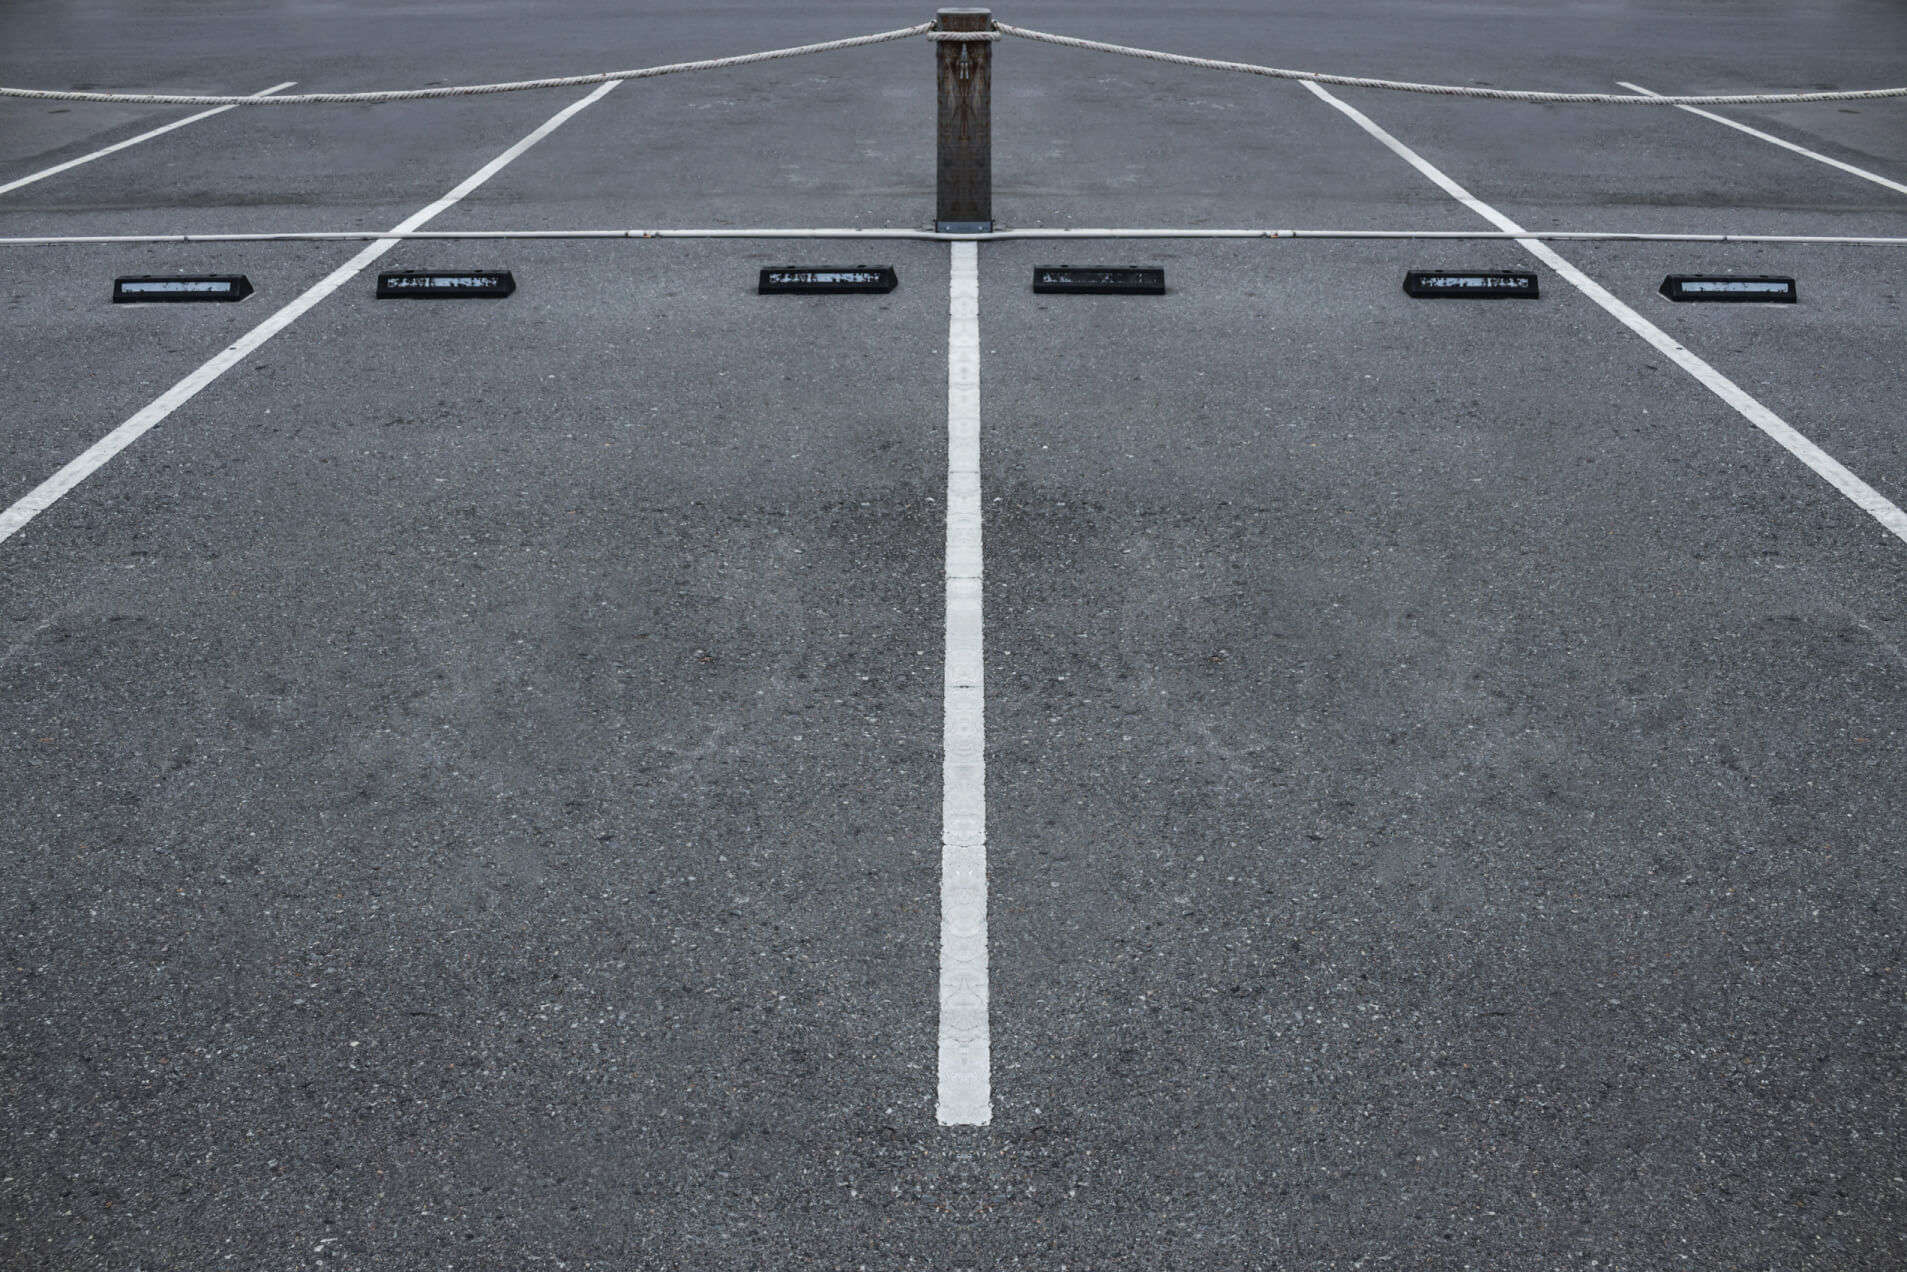 Empty car parking spaces with white lines